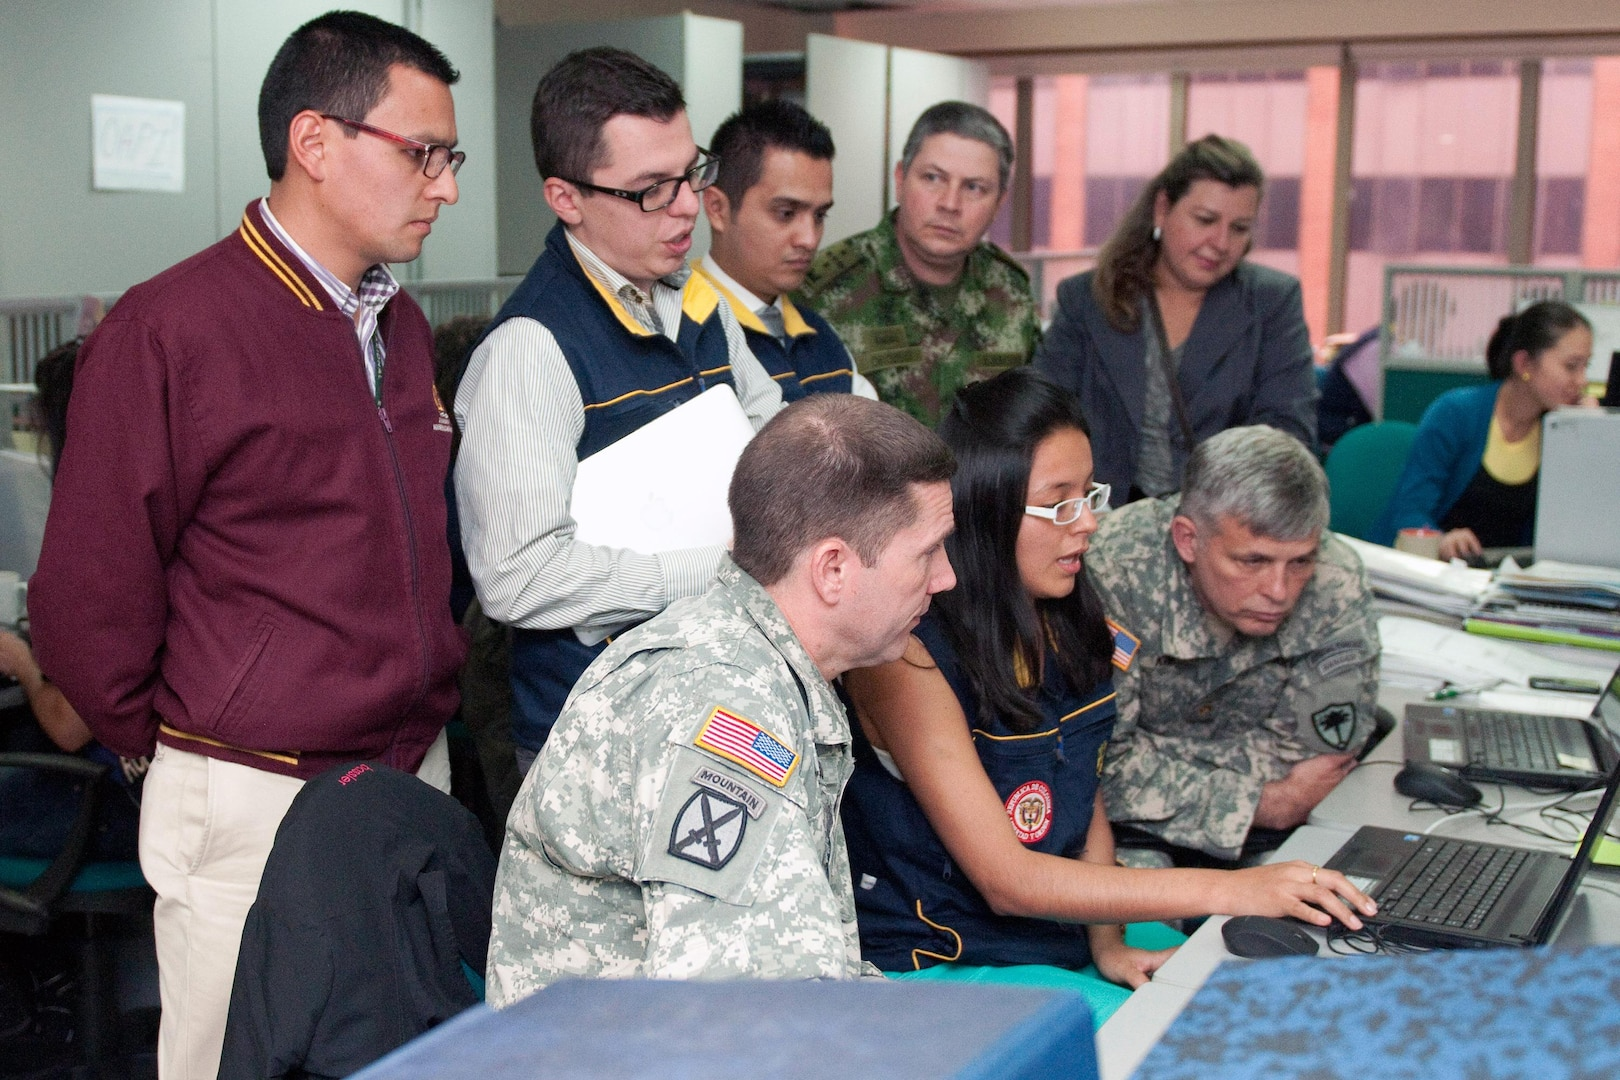 South Carolina National Guard members visit the Colombia emergency services (UNGRD) office to see their programs in action, Sept. 13, 2013, in Bogota.